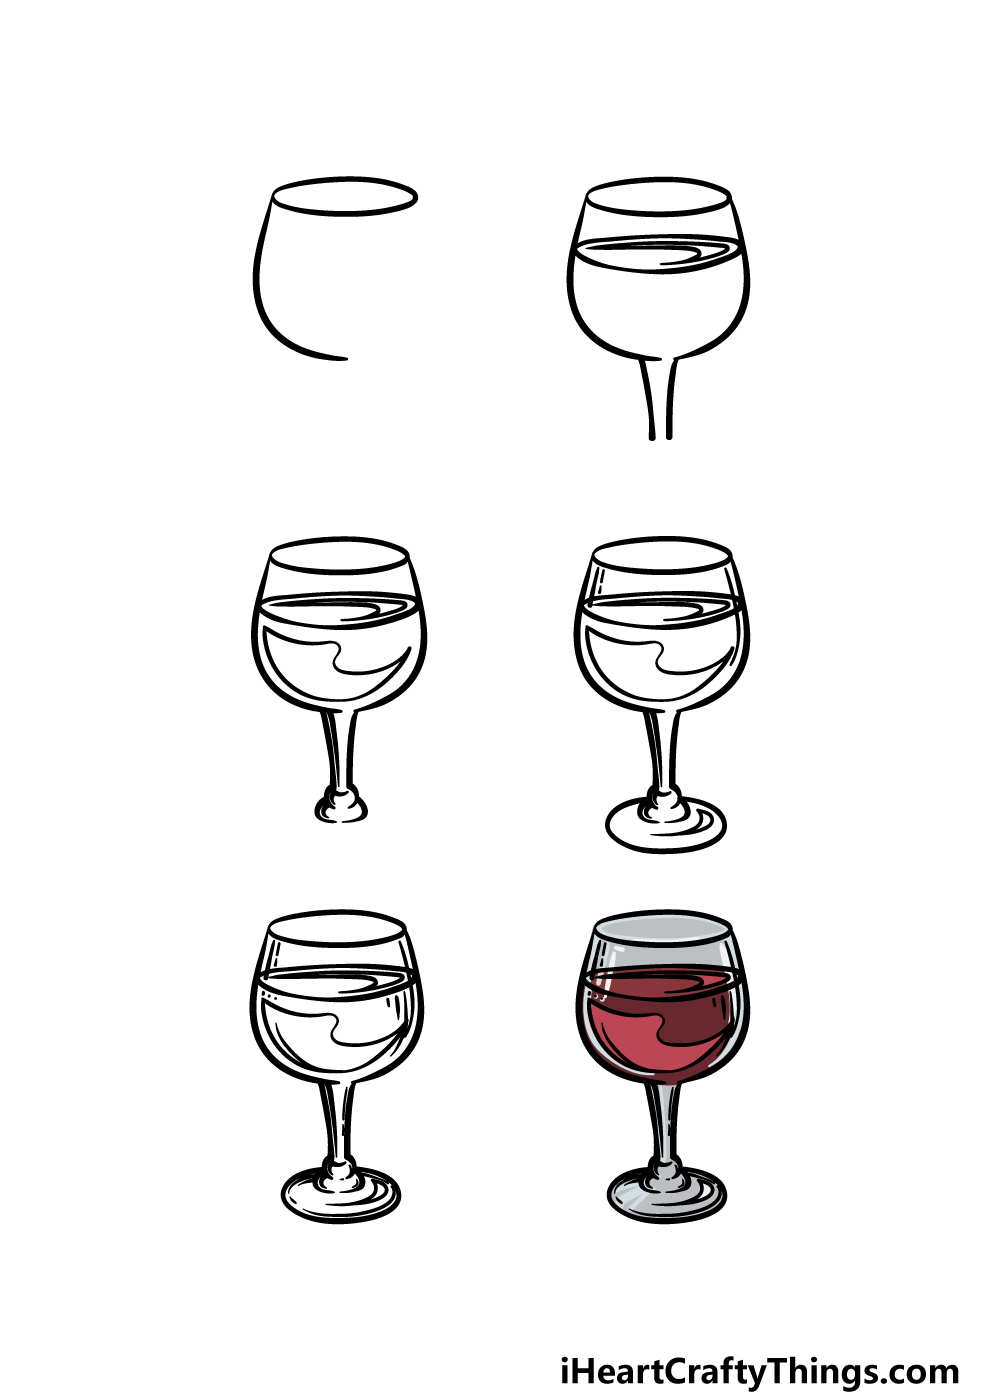 how to draw a wine glass in 6 steps